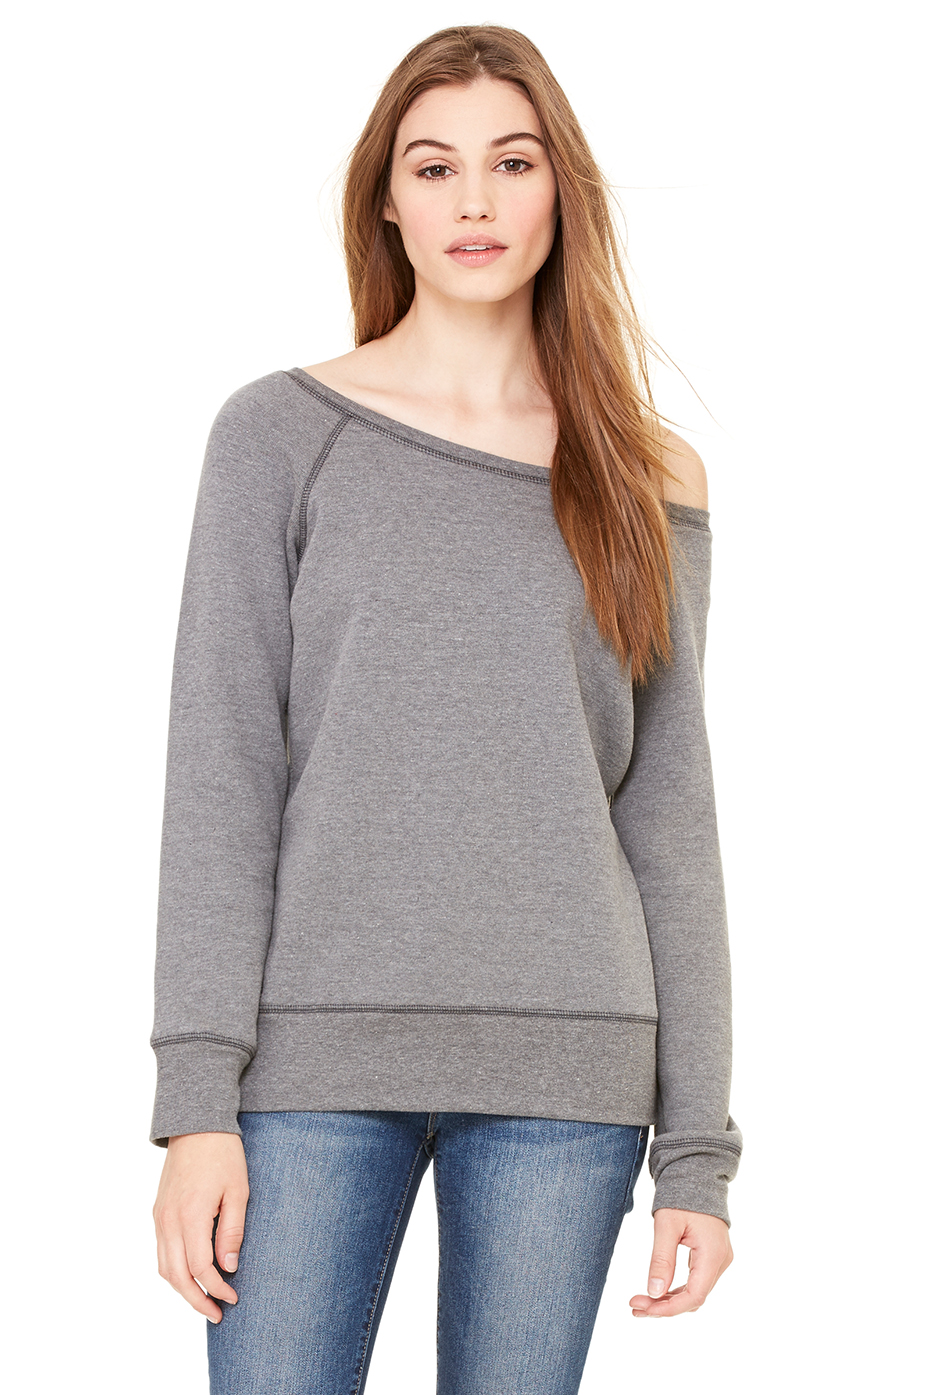 Women's Sponge Fleece Wide Neck Sweatshirt | Bella-Canvas